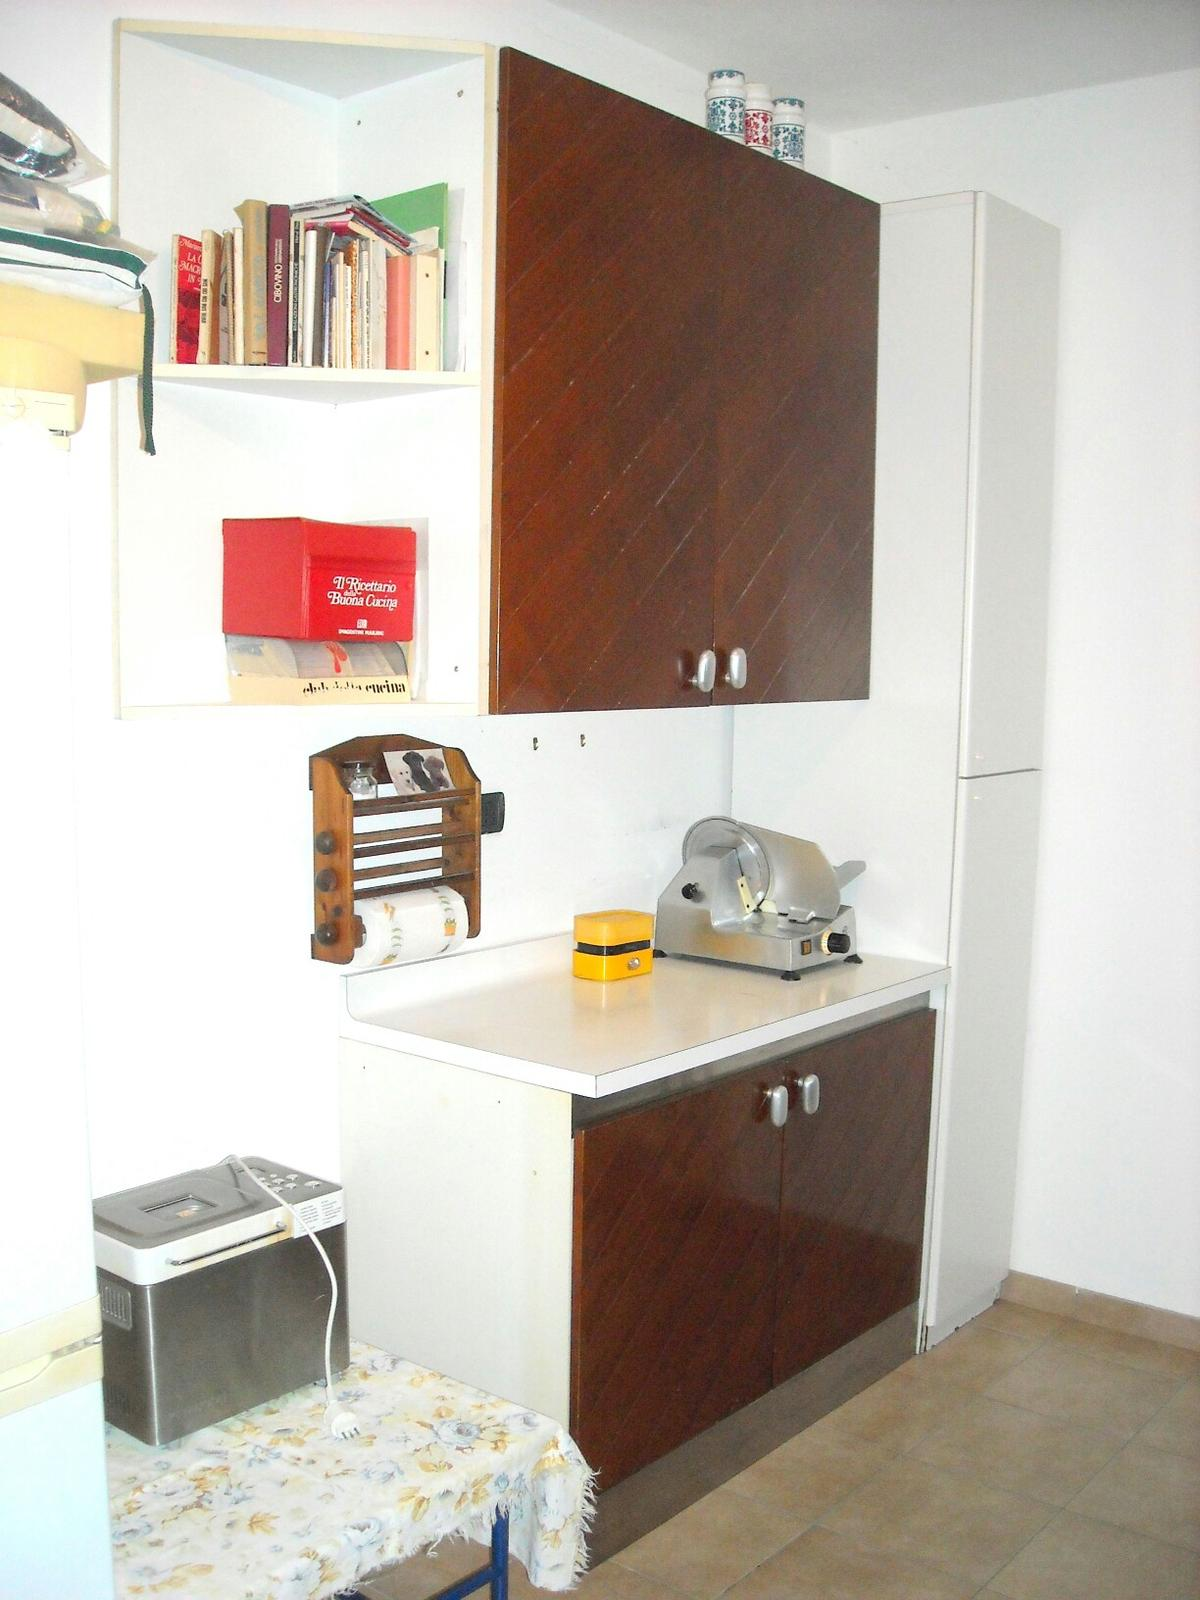 Cucina Rossana Cucina Rossana Originale In 23900 Lecco For 450 00 For Sale Shpock